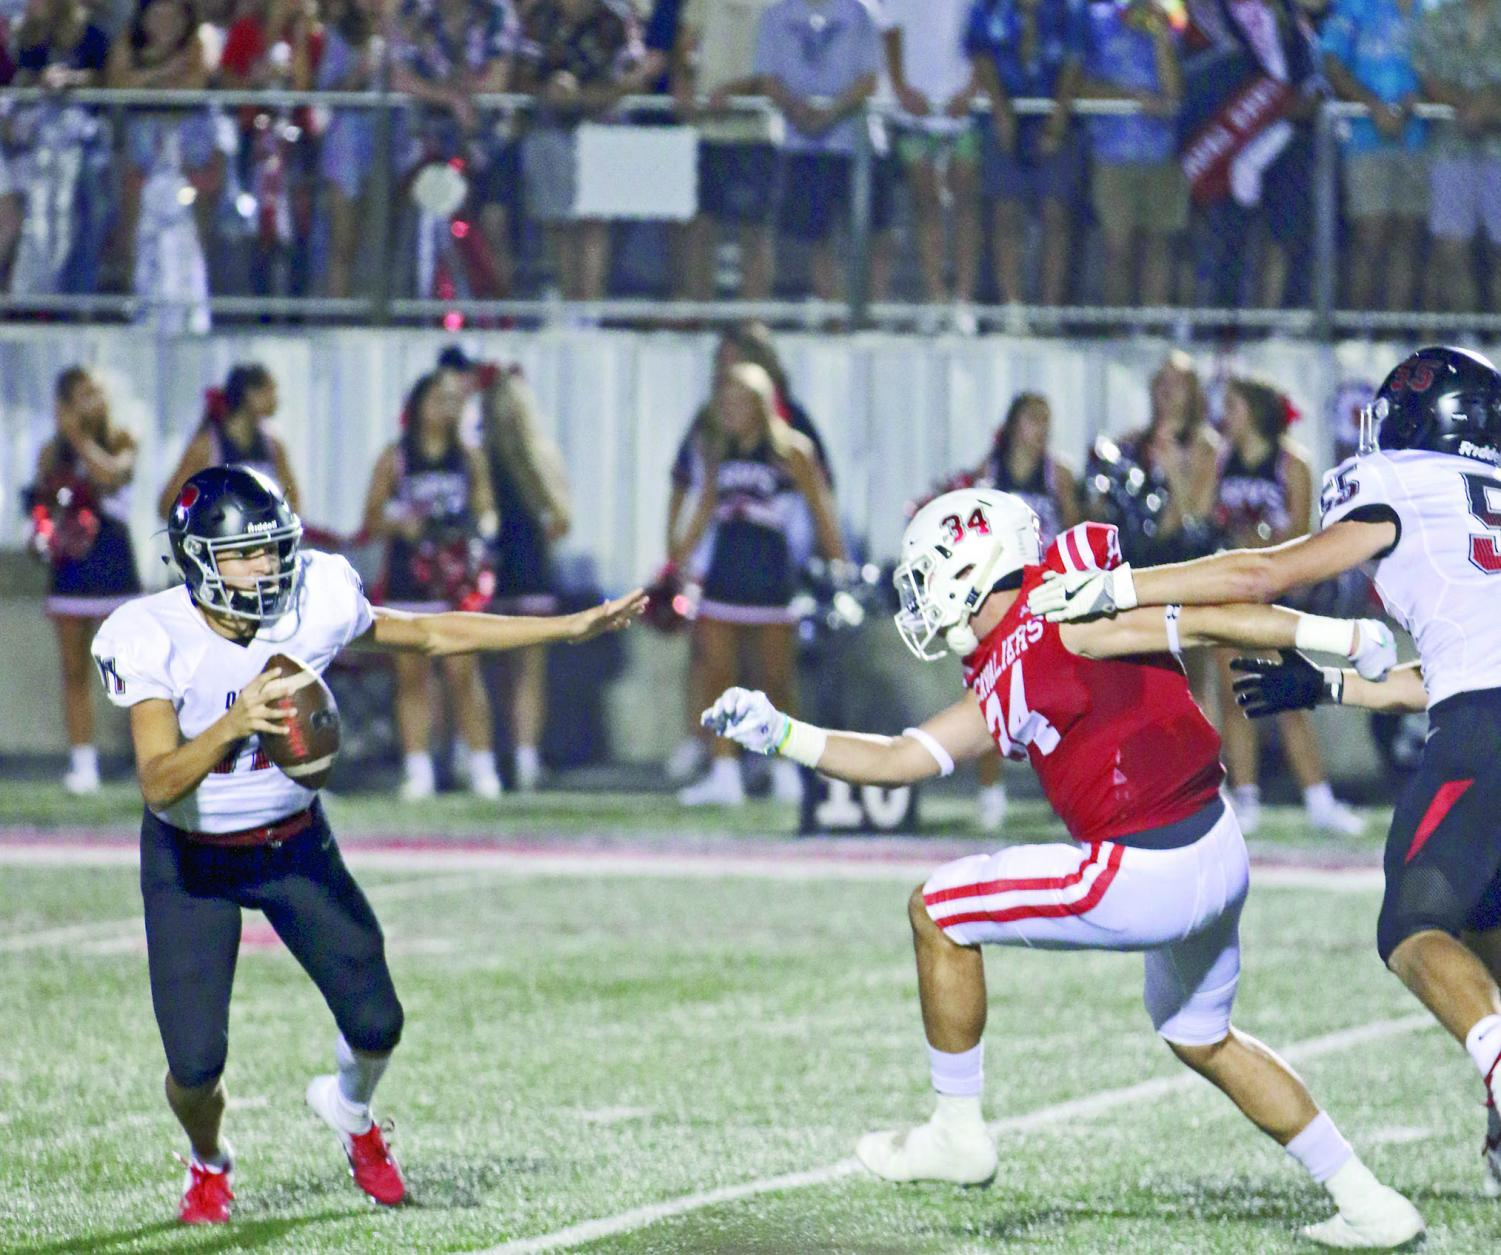 STAR PLAYER: Sophomore quarterback Diego Tello searches for a target as his opponent charges at him. Tello will be one of the varsity starting quarterbacks for the rest of this season.